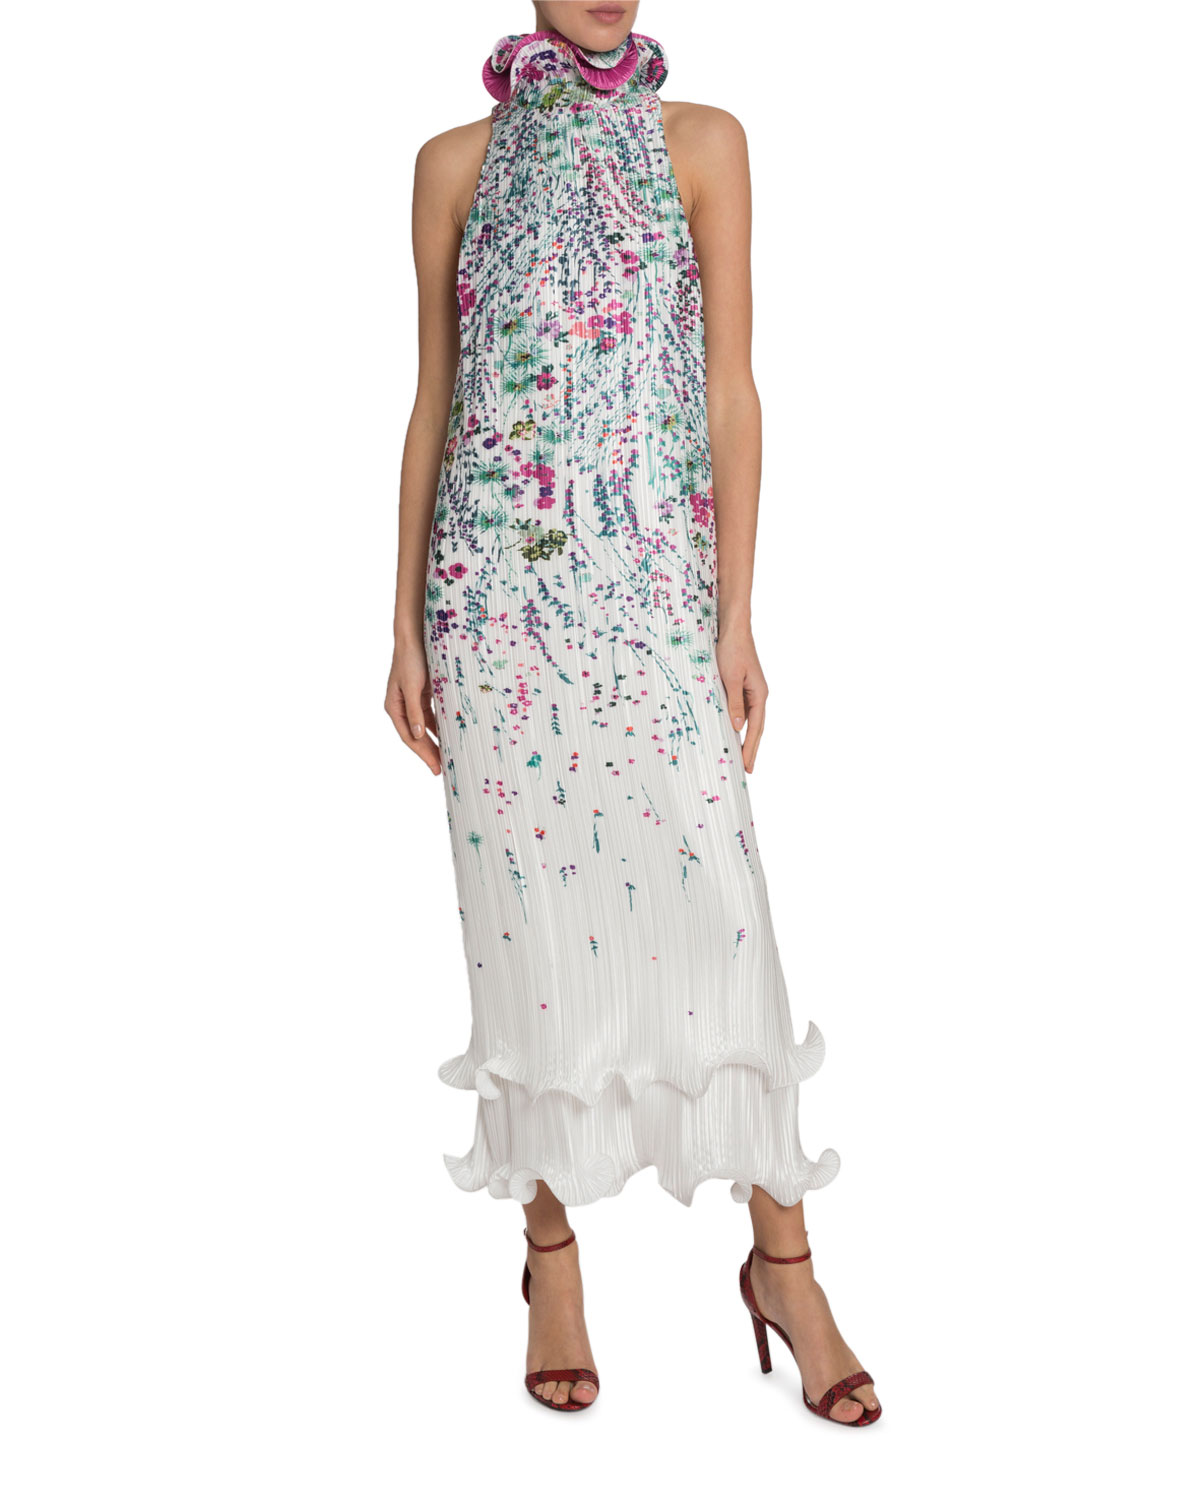 Givenchy Dresses FLORAL PLEATED DRESS